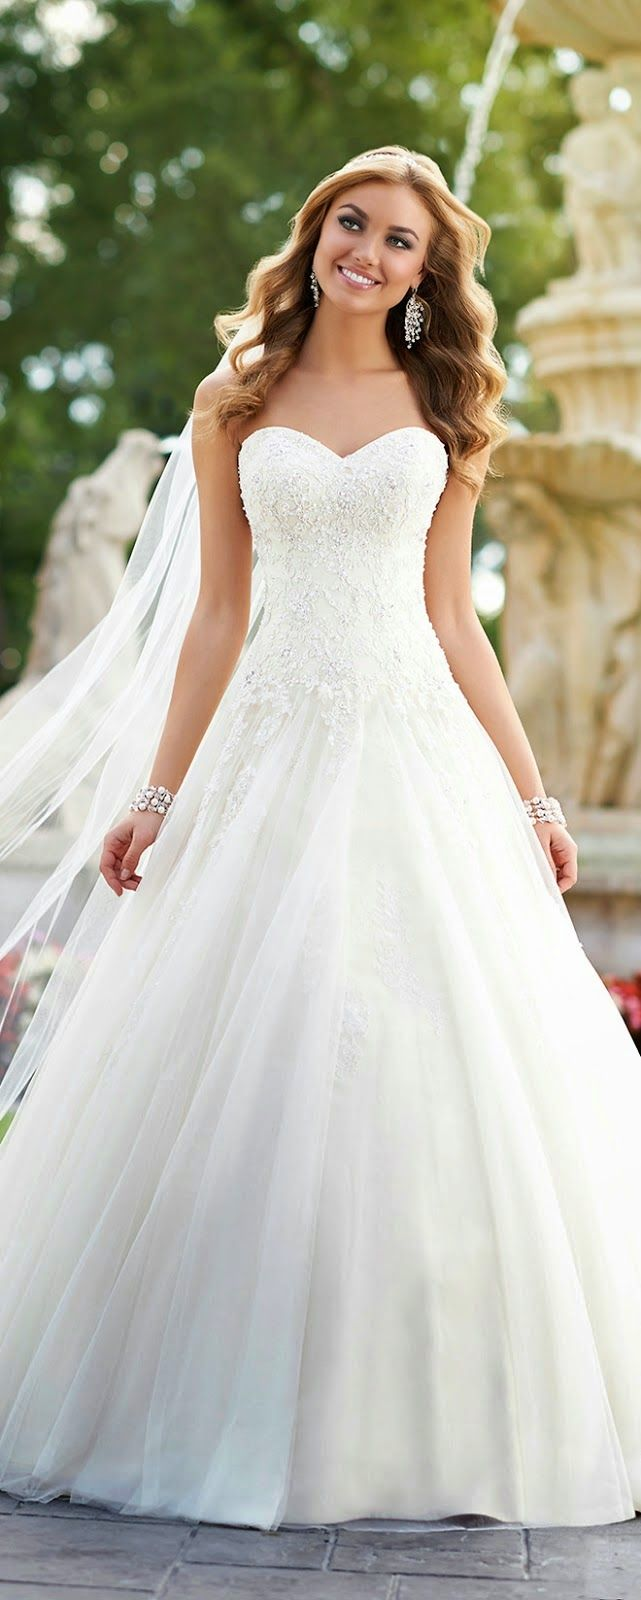 Wedding dresses archives best wedding dresses wedding dressses best wedding dresses of 2014 belle the magazine the wedding blog for the sophisticated junglespirit Image collections